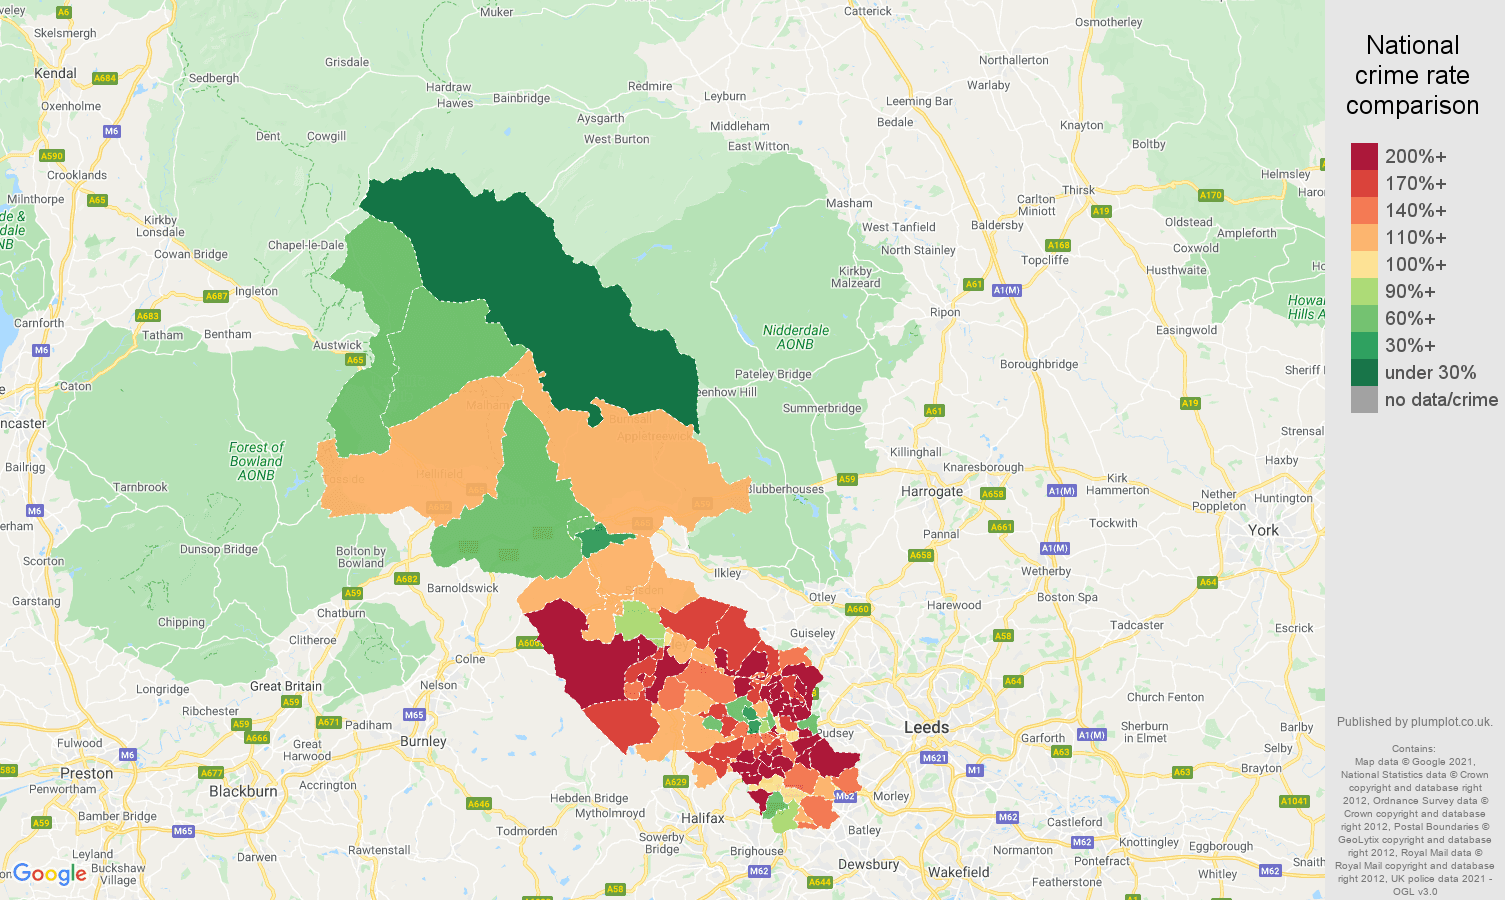 Bradford burglary crime rate comparison map